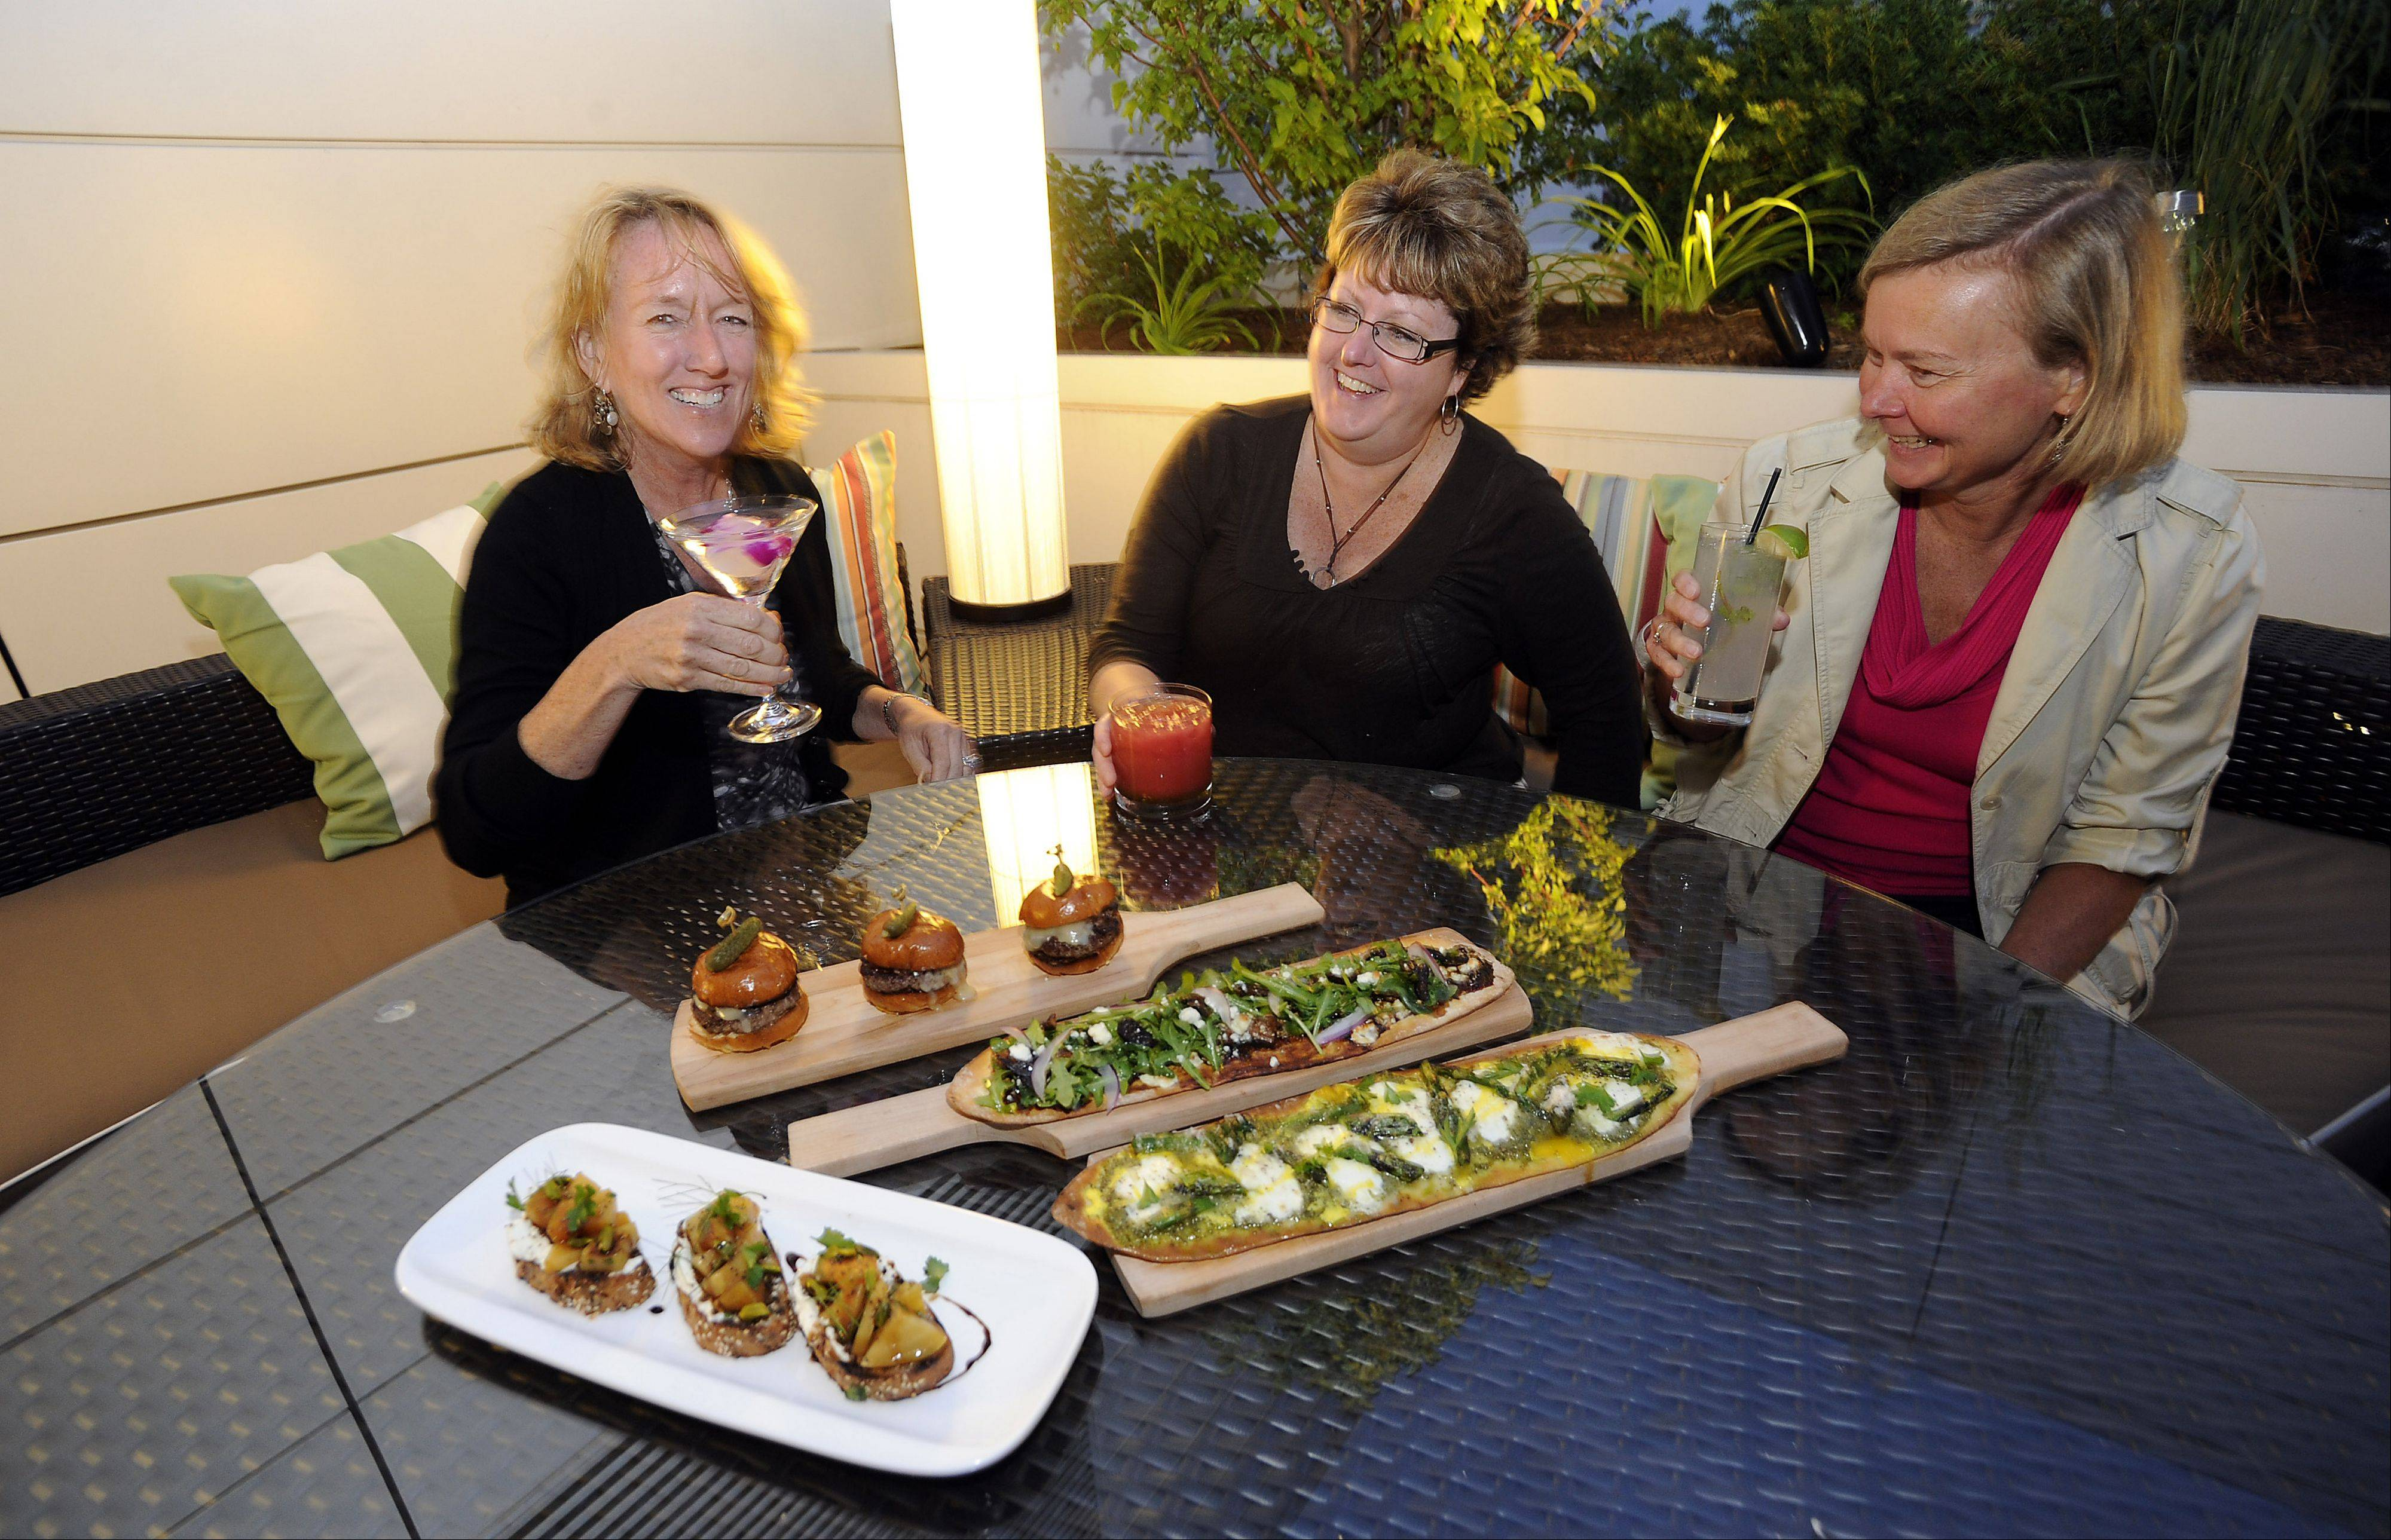 Mary Ellen Hogan of Arlington Heights, Alice Wimberly of Arlington Heights and Diane Heath of Elk Grove Village share a selection of drinks and appetizers at The Terrace.